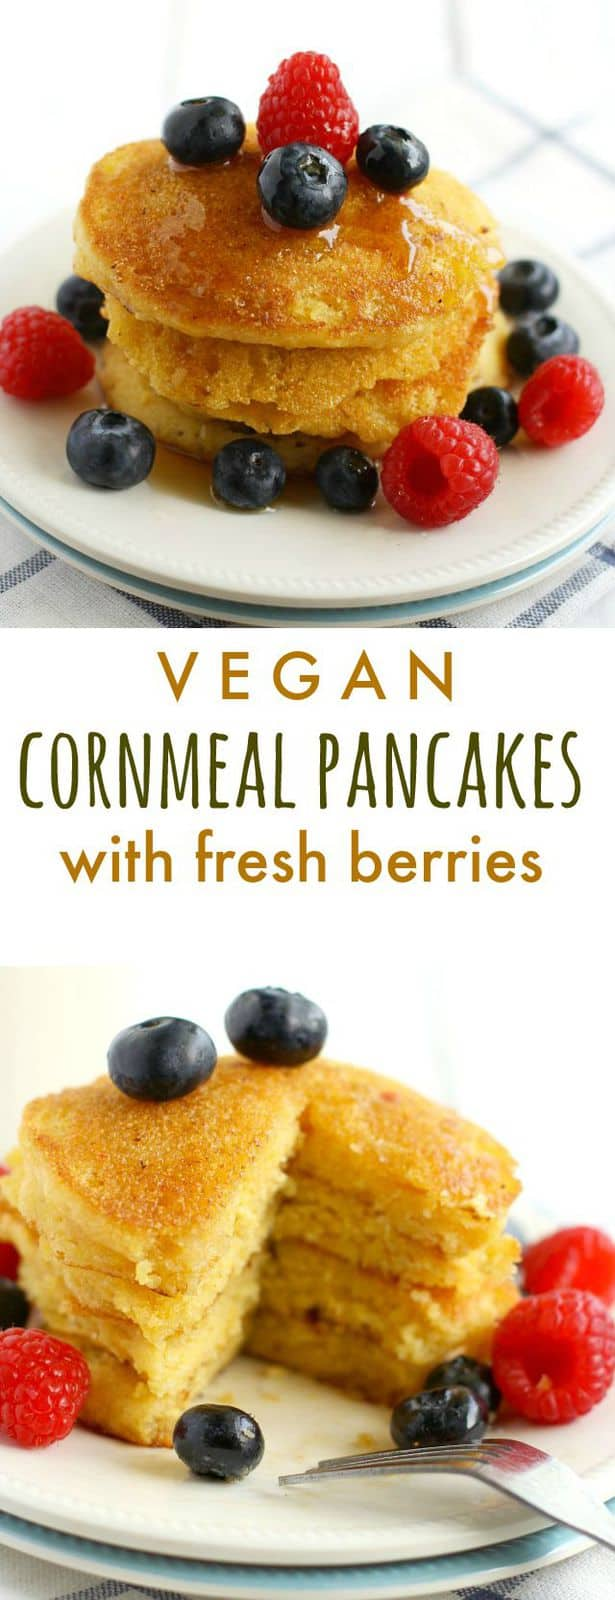 Cornmeal pancakes are the perfect weekend breakfast! These #vegan pancakes are great topped with syrup and fresh berries! #pancakes #vegan #plantbased